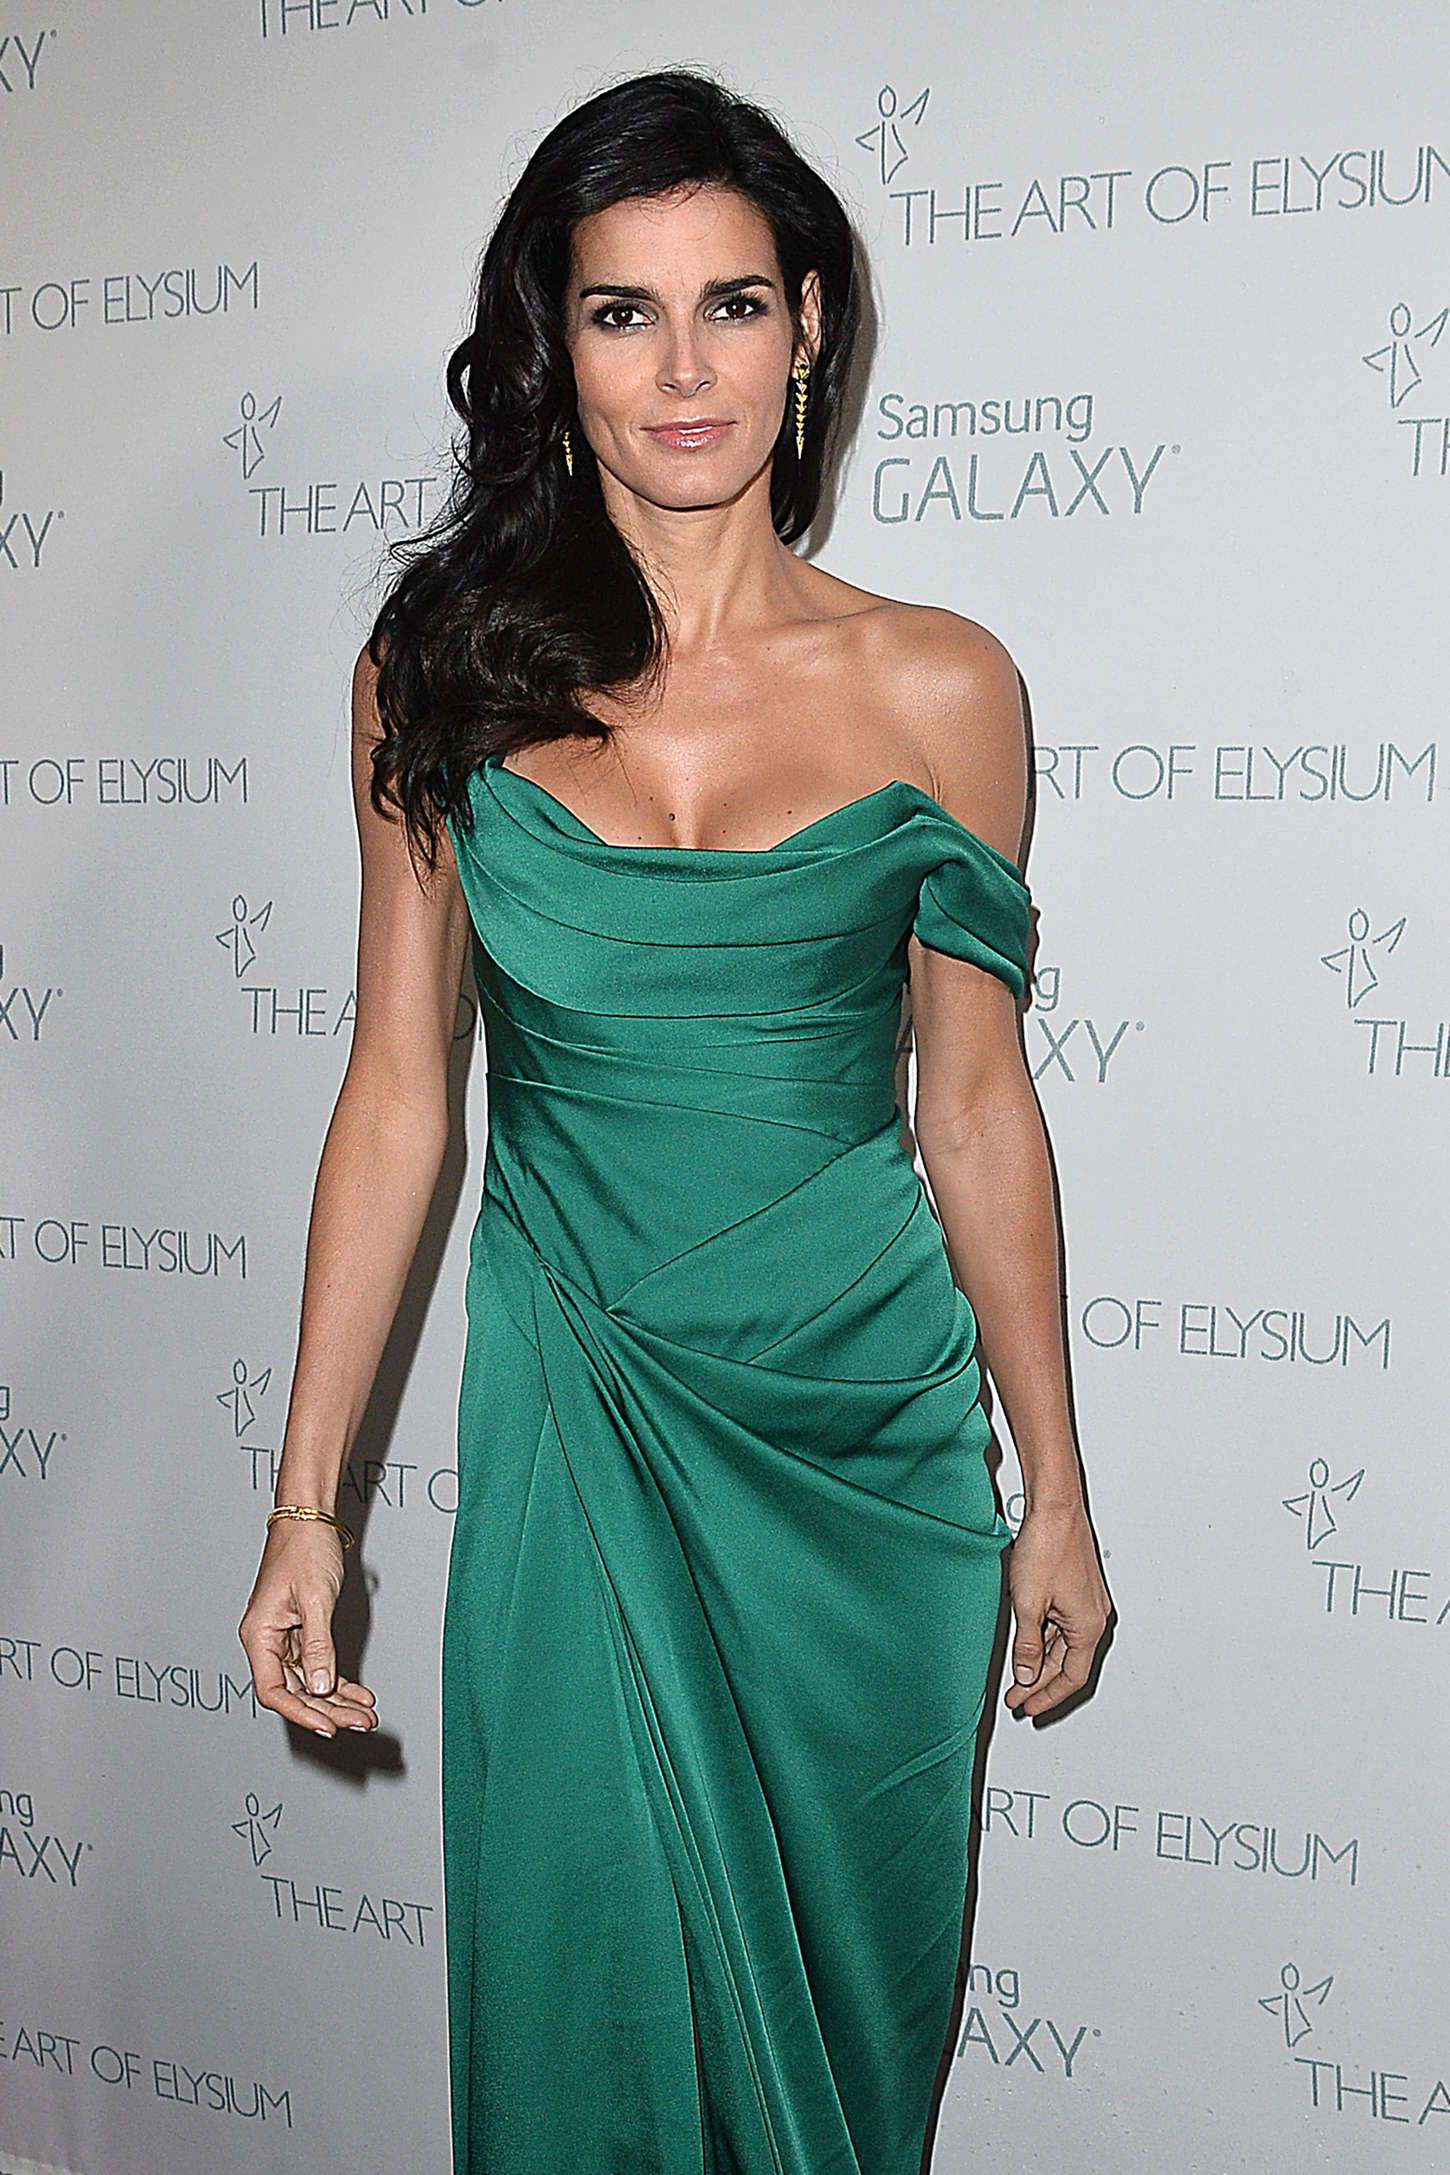 Angie Harmon The Art Of Elysium Marina Abramovics HEAVEN in Los Angeles